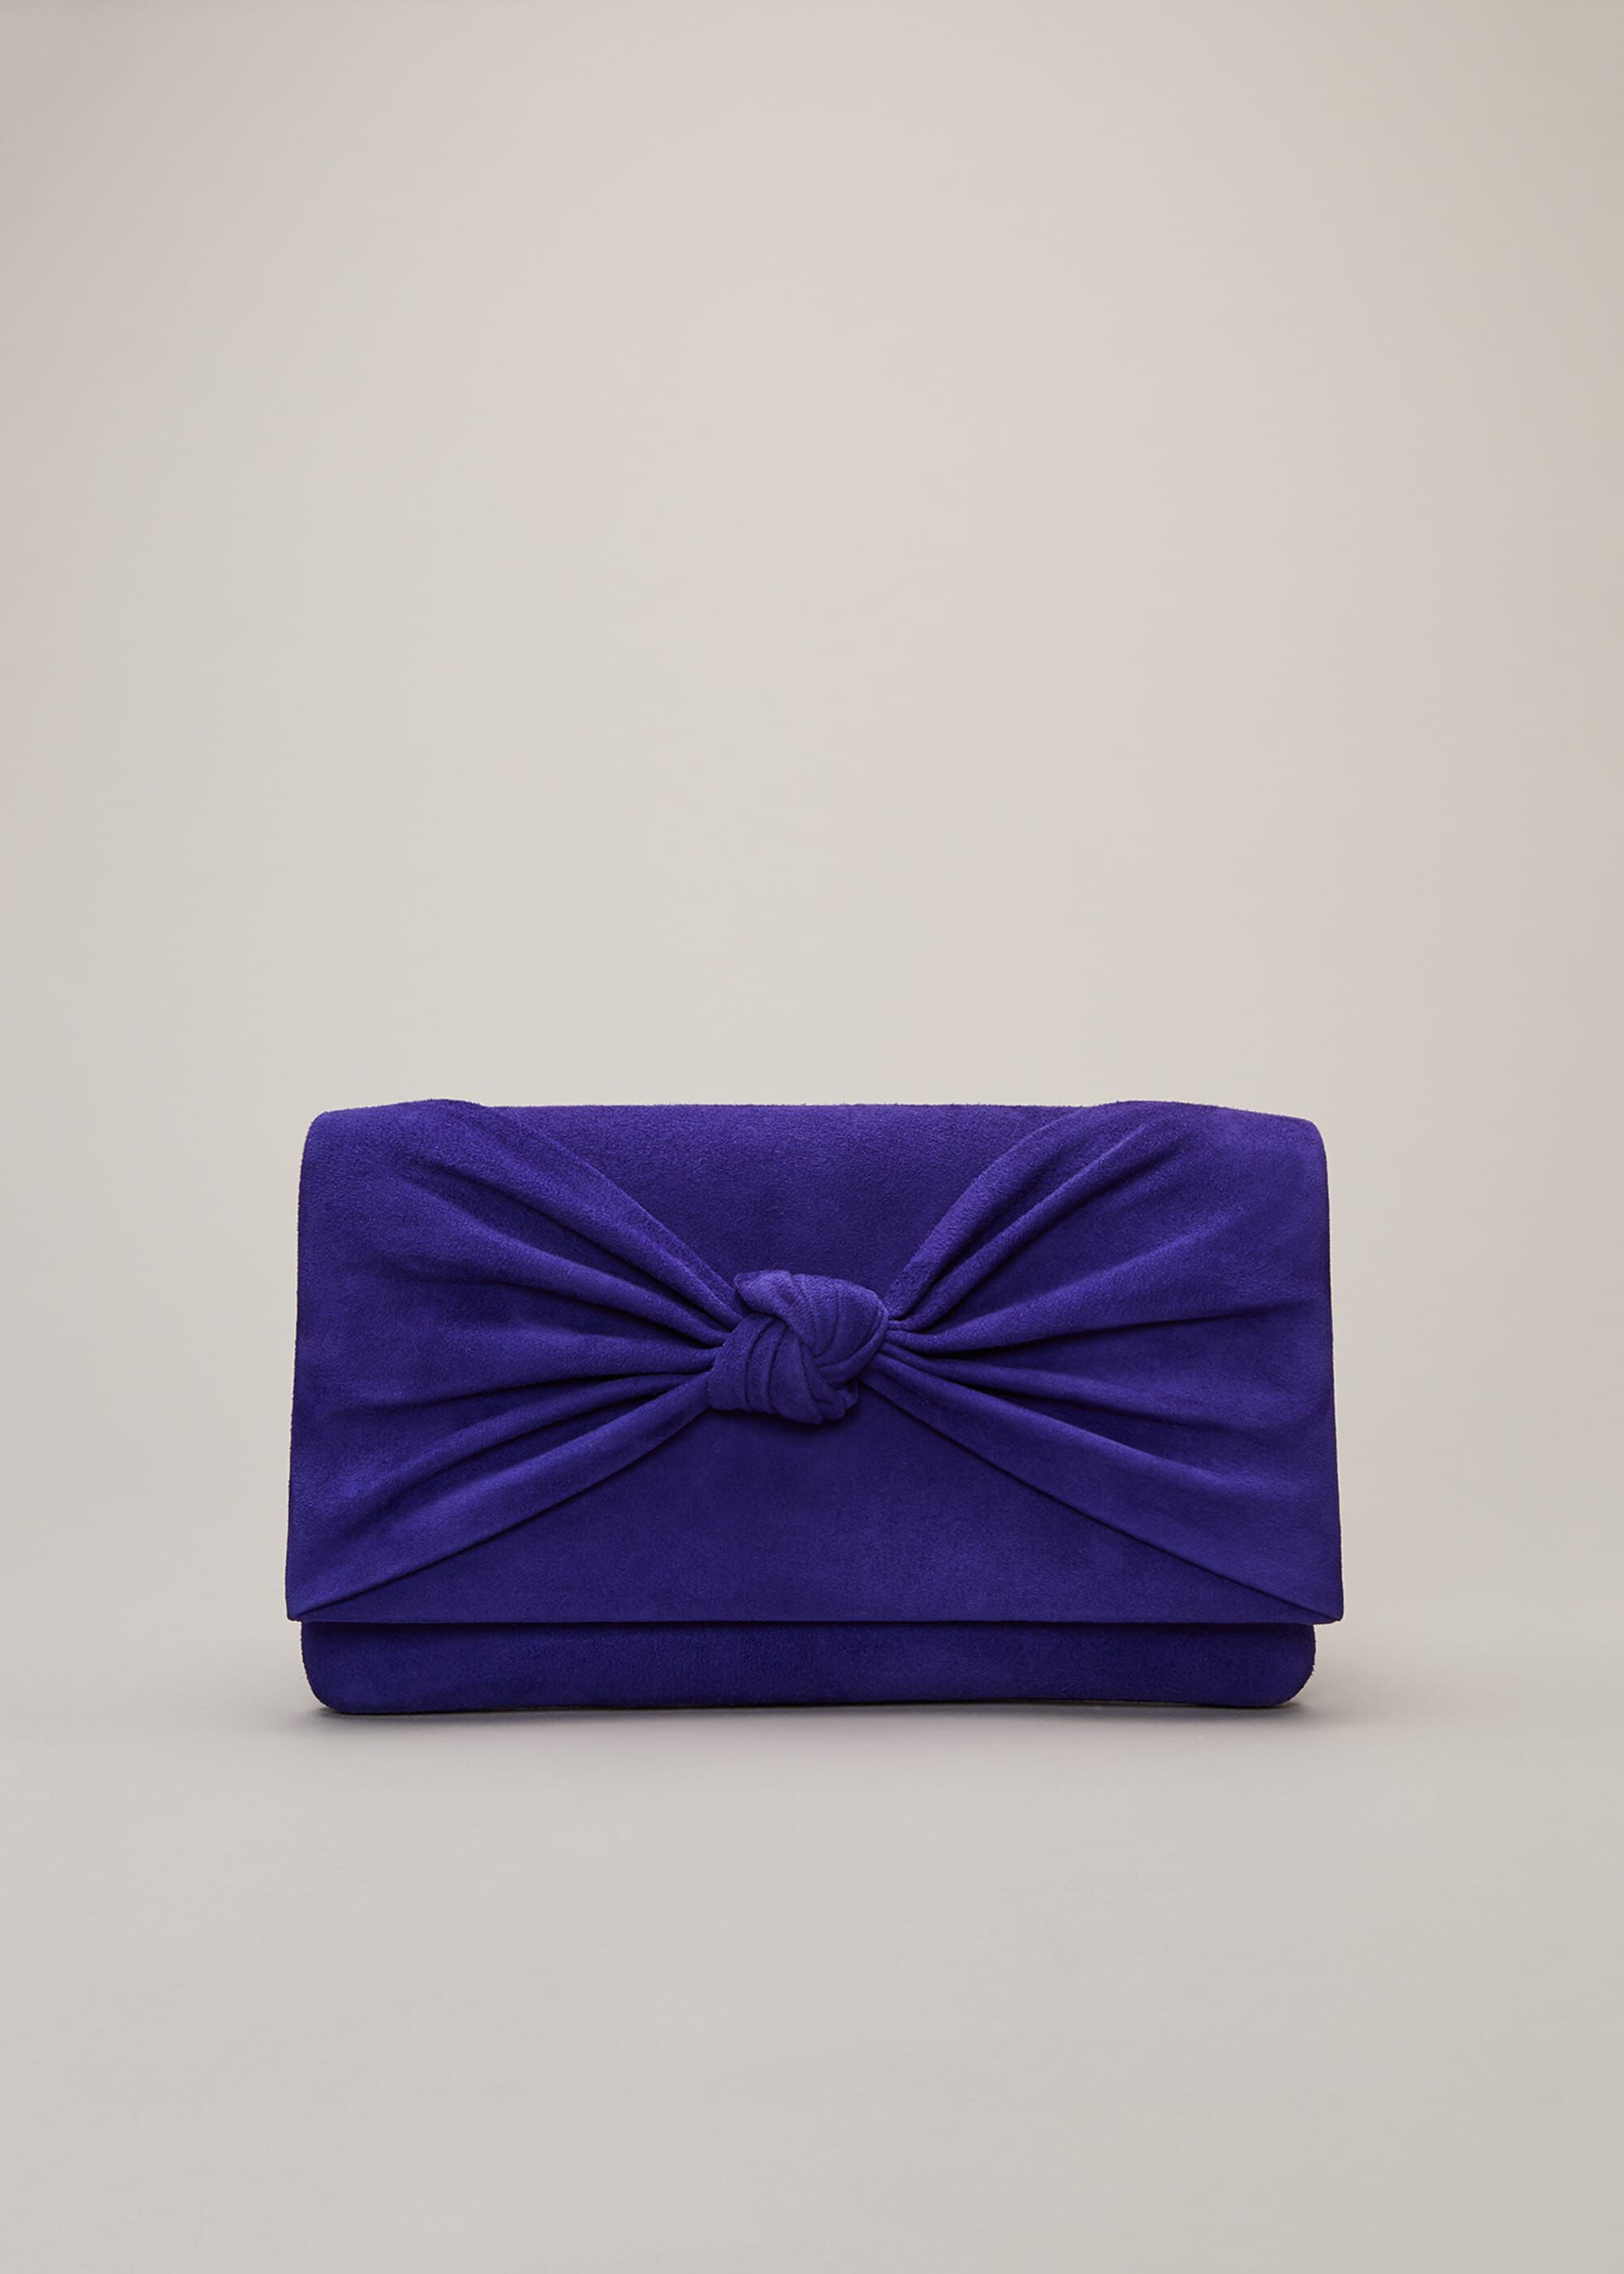 Phase Eight Carrie Knot Front Clutch Bag, Blue, Bag